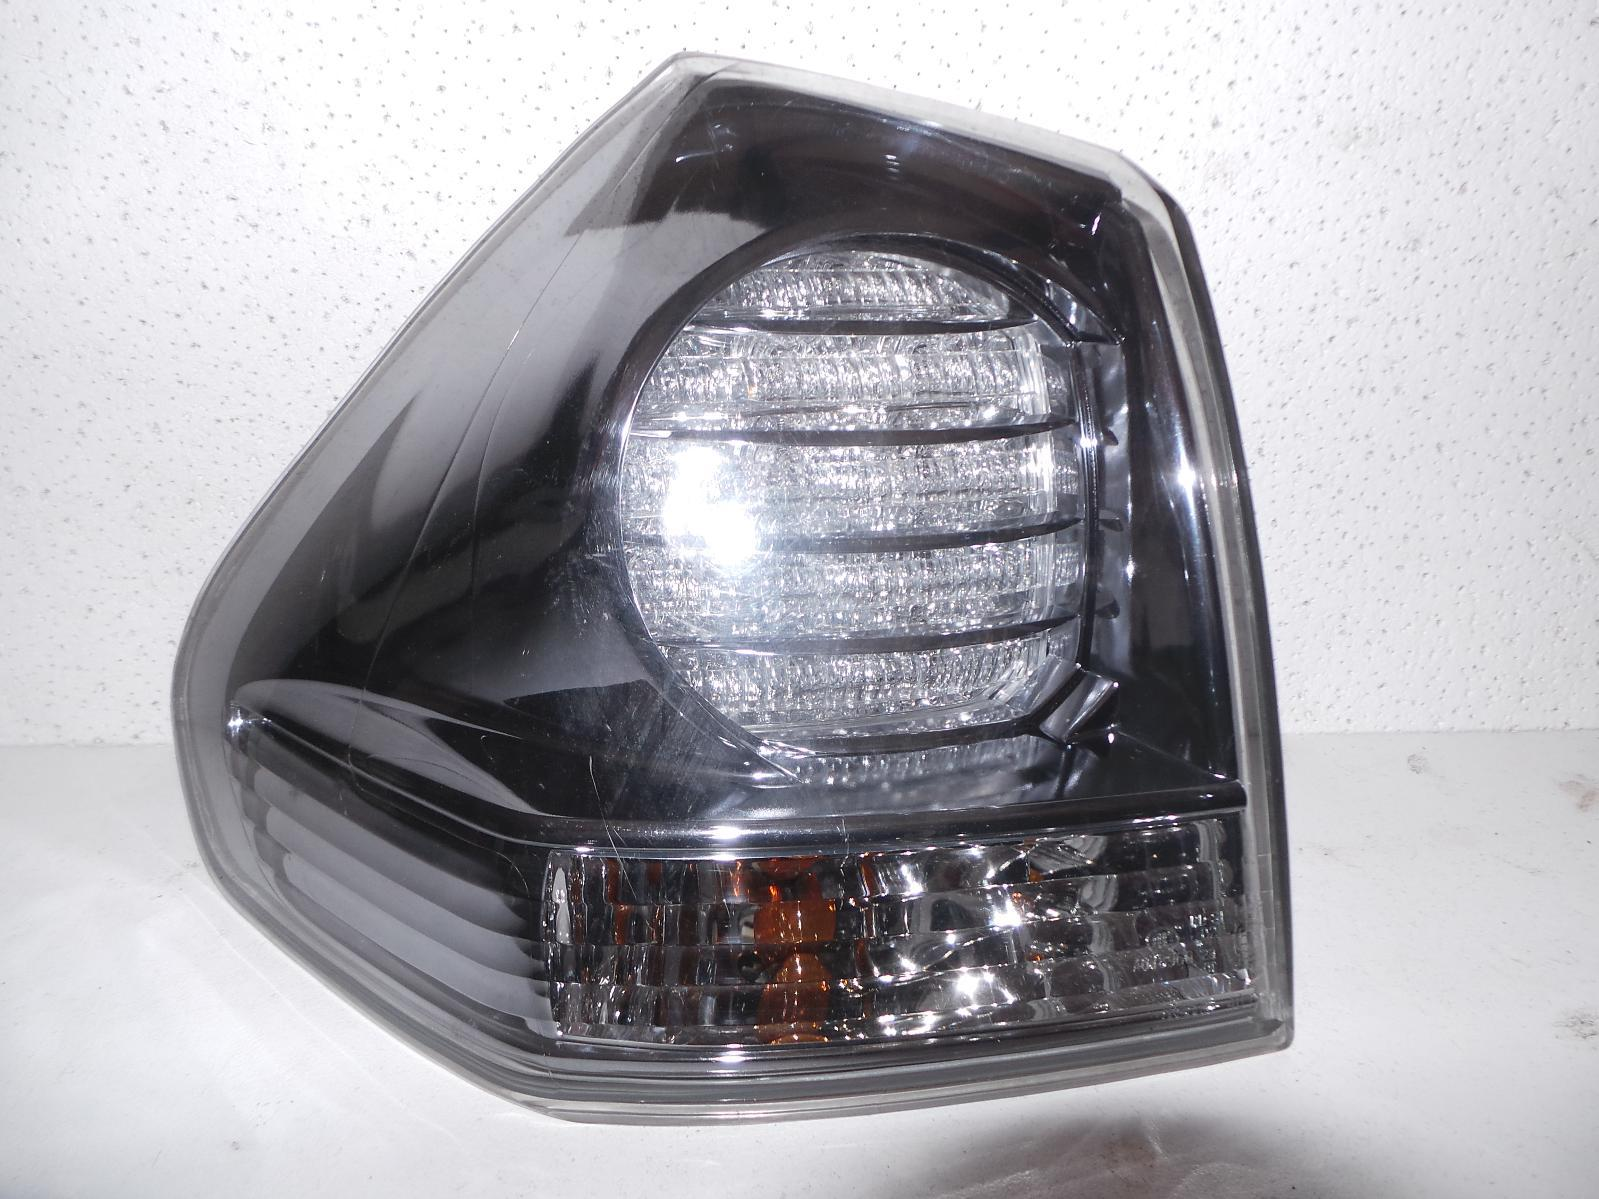 LEXUS RX350, Left Taillight, RX400H, MHU3#, IN BODY, 03/06-02/09